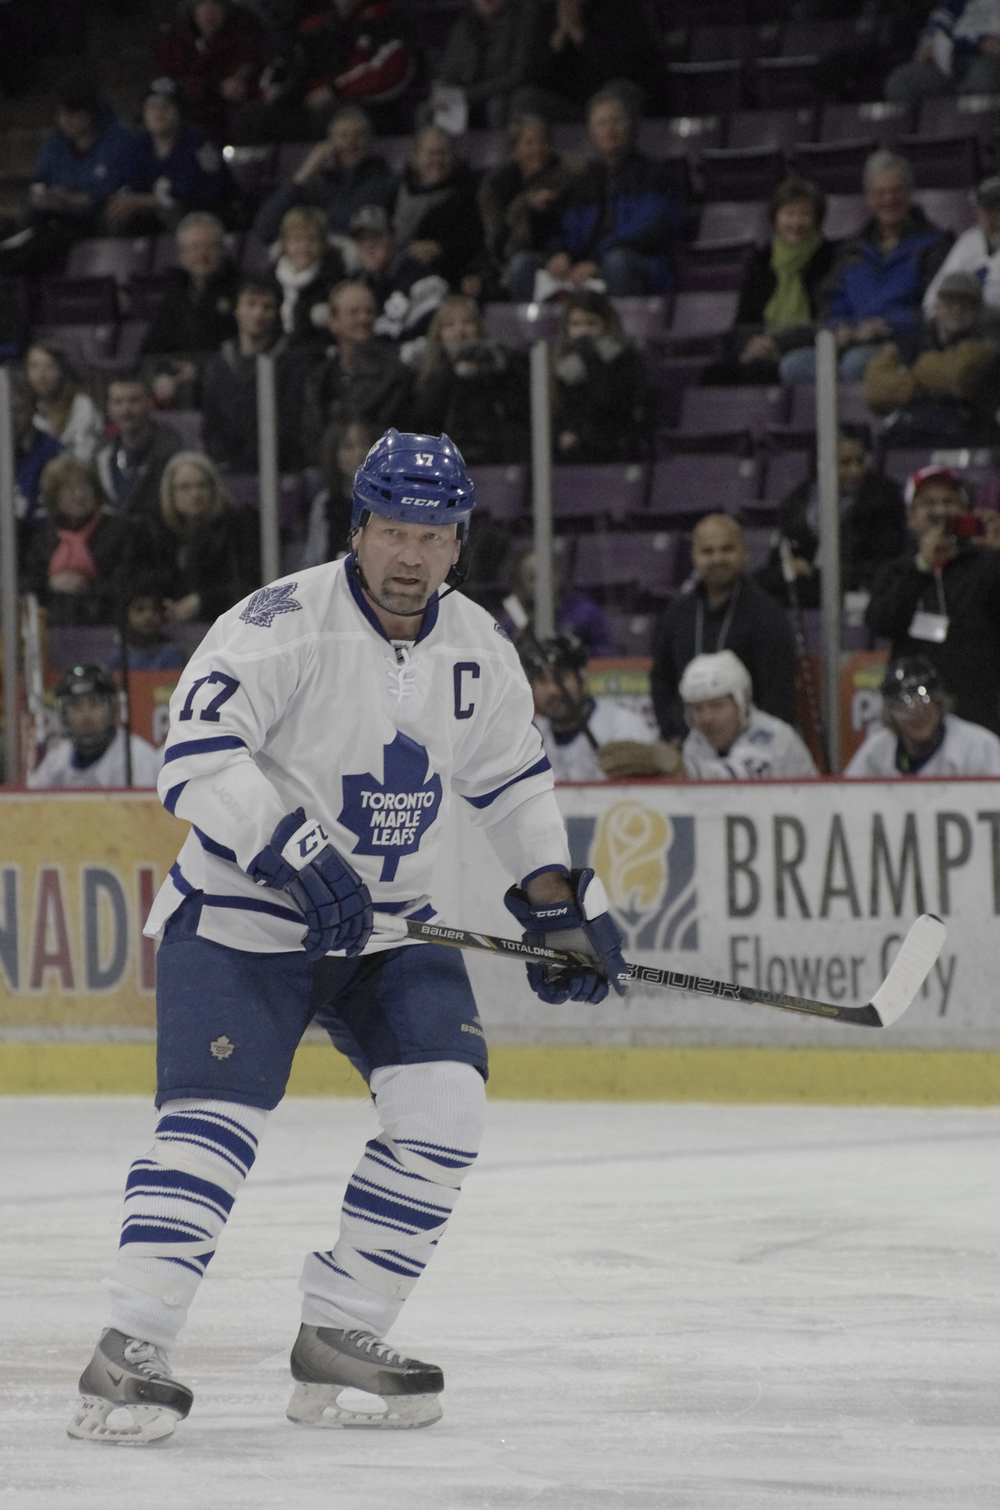 NHL alumnus Wendel Clark glances towards his teammates on the bench at a charity game at the Powerade Centre in Brampton, ON.  As published in Snapd Brampton, March 2015.